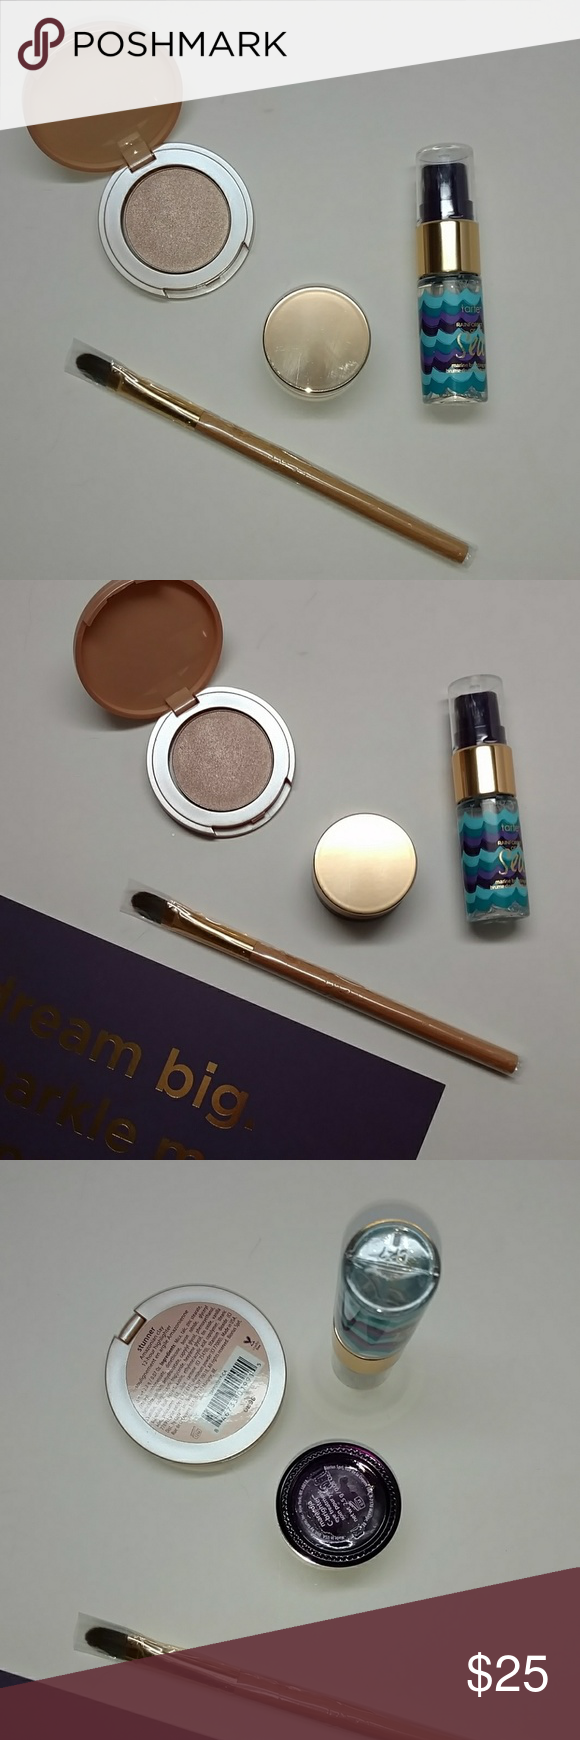 Tarte bundle Tarte bundle includes highlighter color stunner, eyeshadow brush, maracuja C brighter eye treatment and marine boosting face mist. All new never used Sephora Makeup